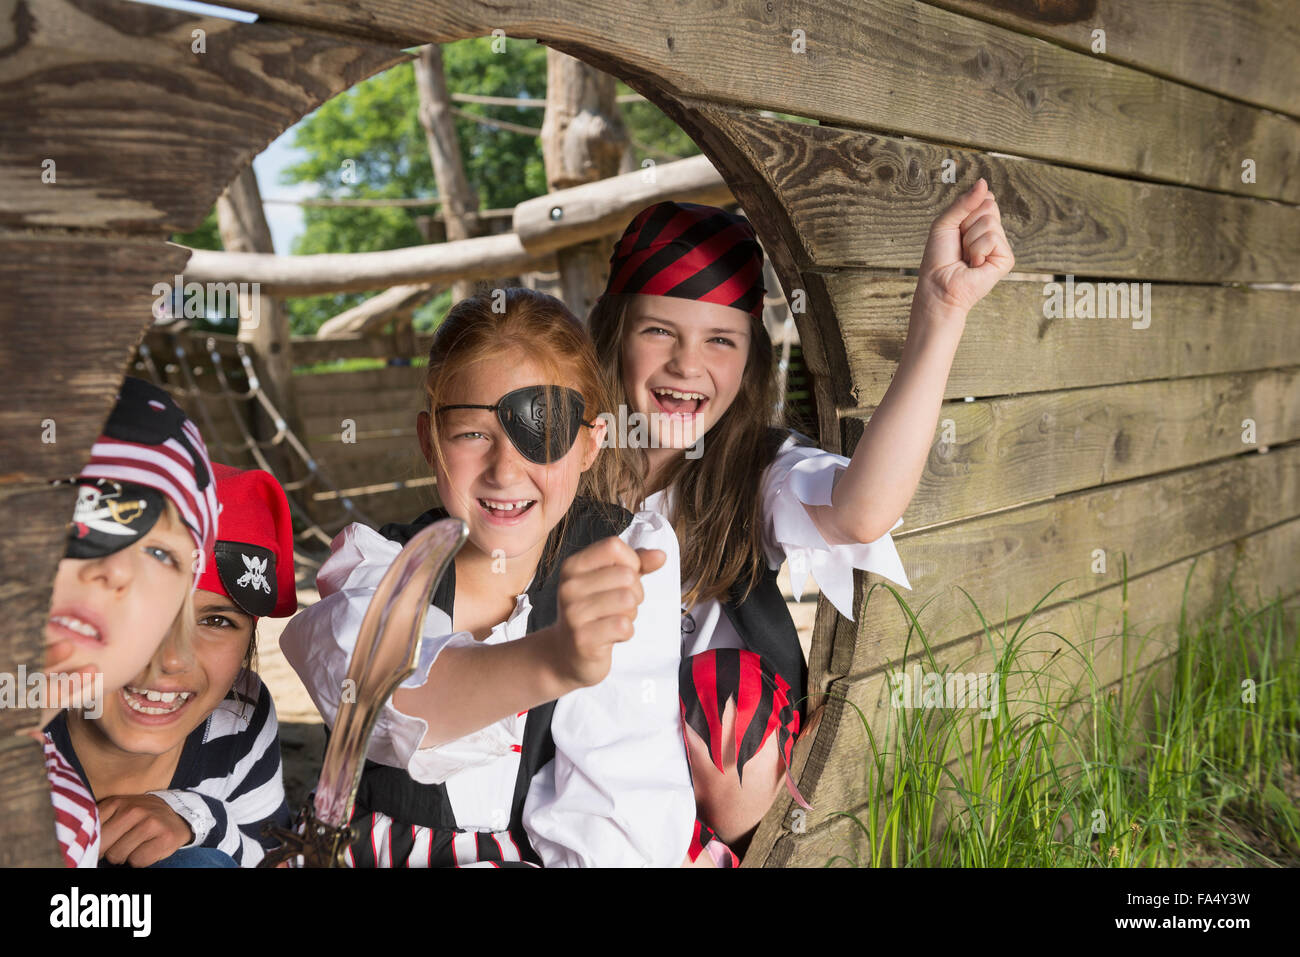 children playing on a pirate ship in adventure playground, Bavaria, Germany Stock Photo